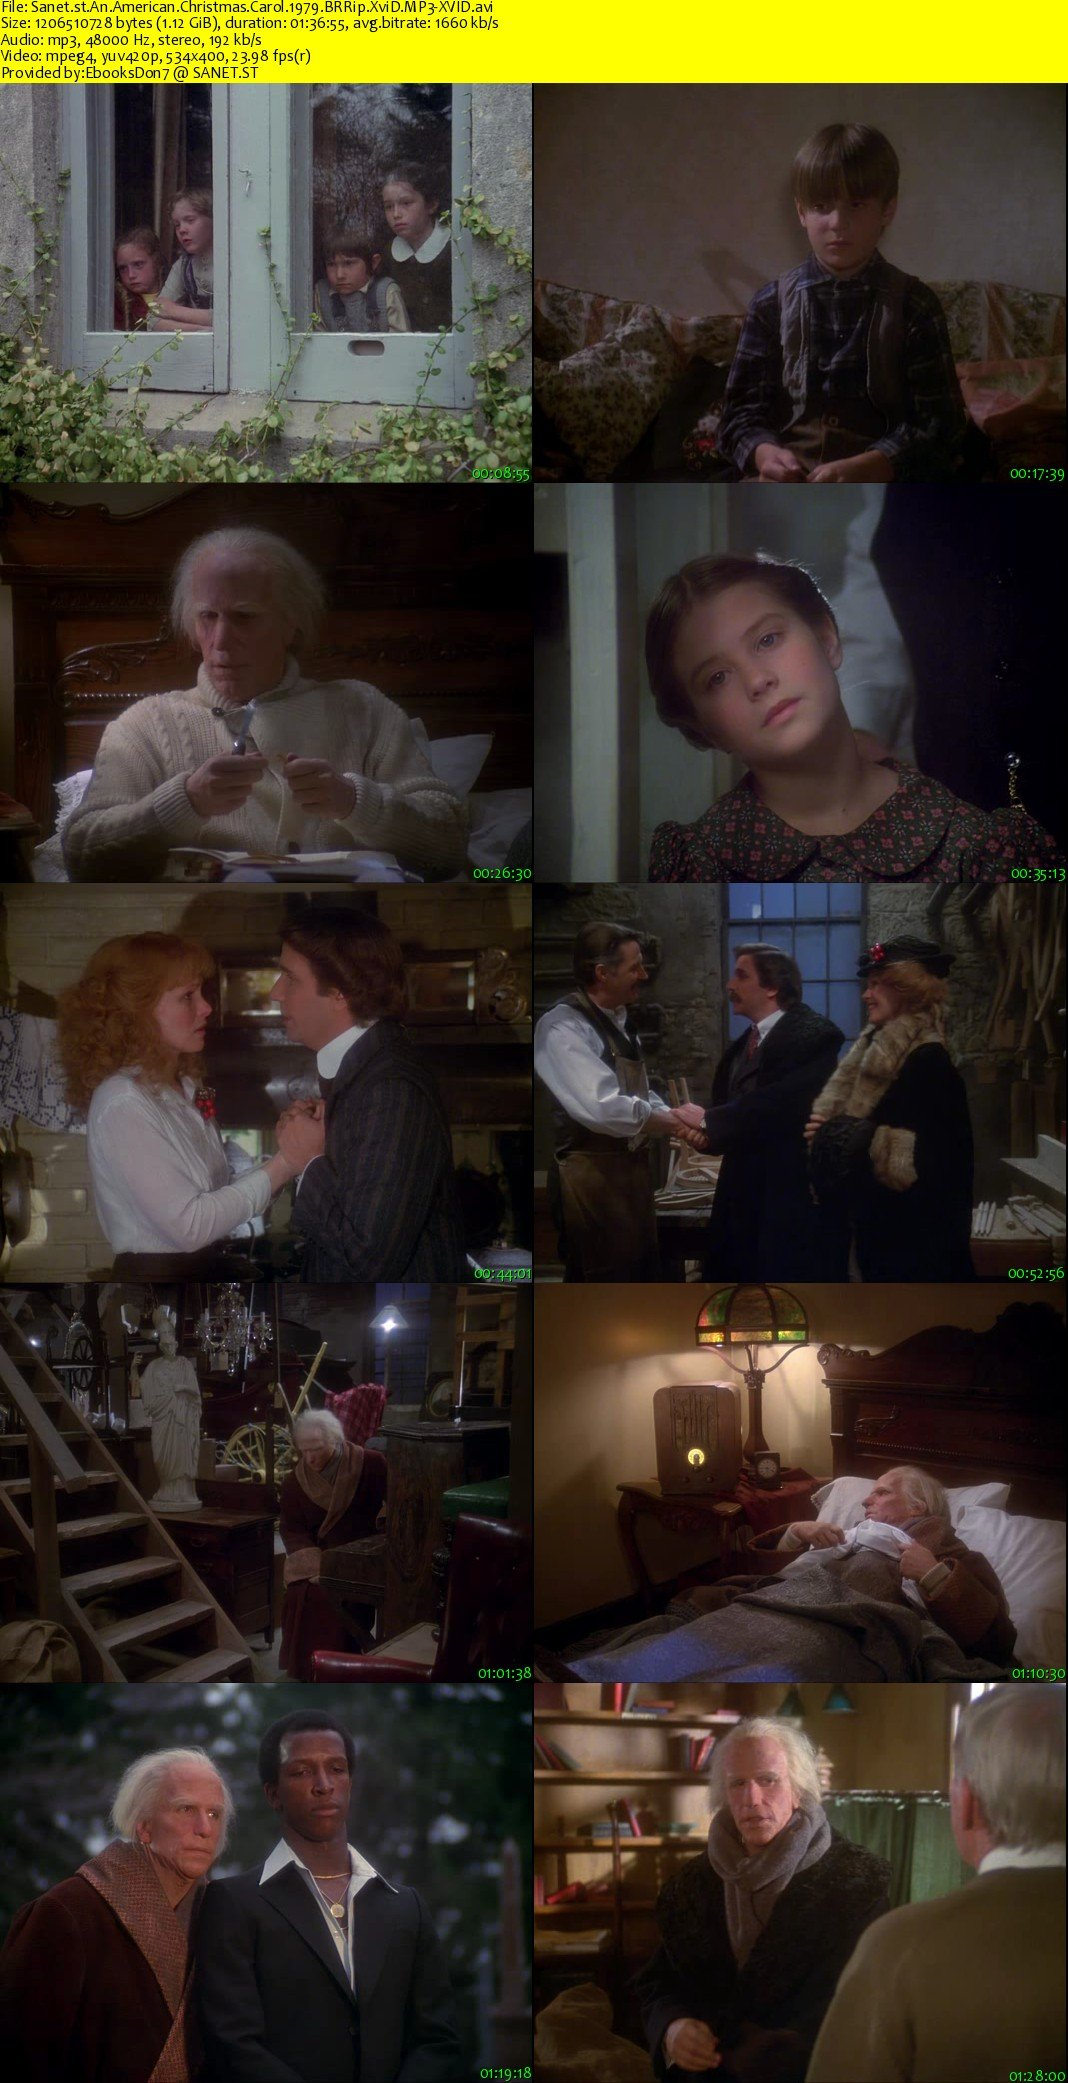 An American Christmas Carol.Download An American Christmas Carol 1979 Brrip Xvid Mp3